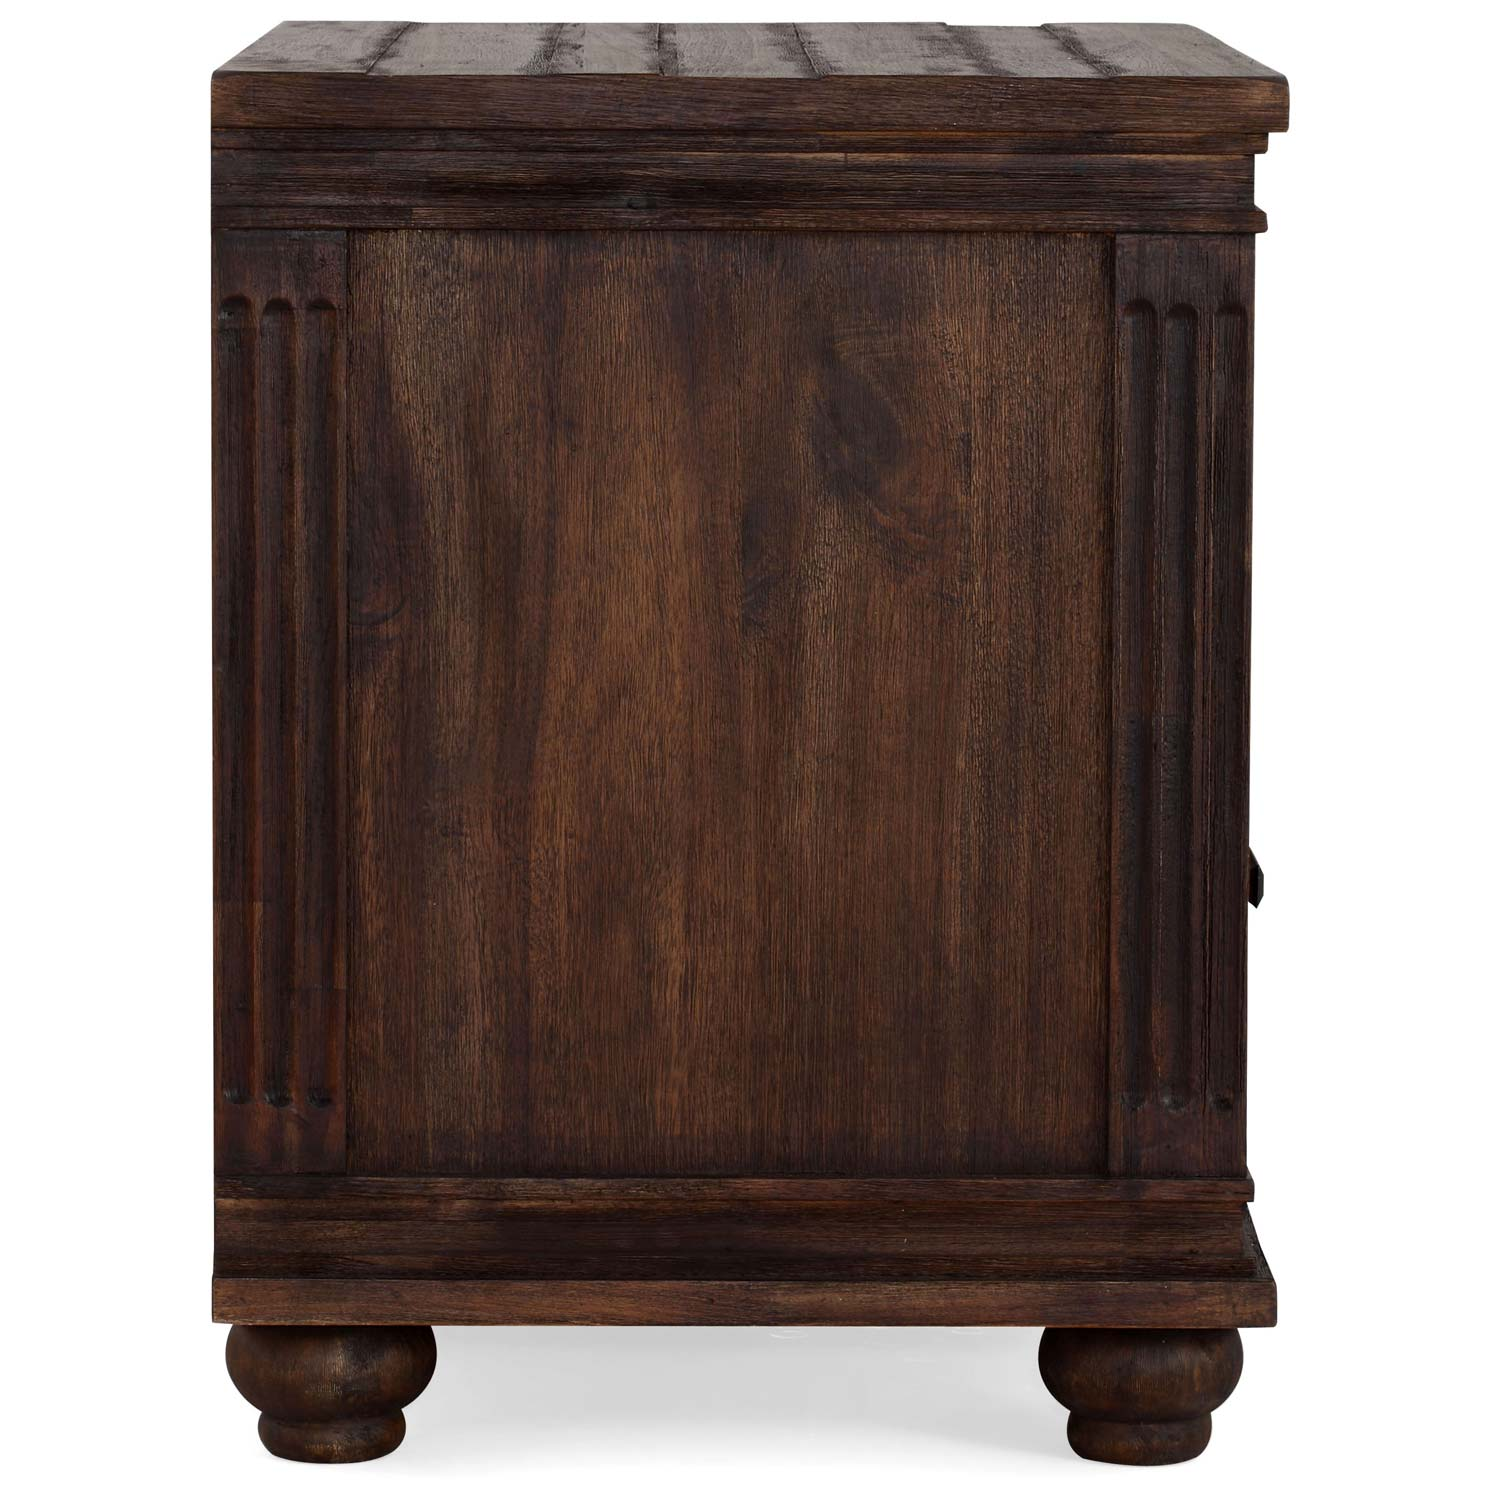 The City Wooden Nightstand - Bun Feet, Dark Brown - ZM-98207